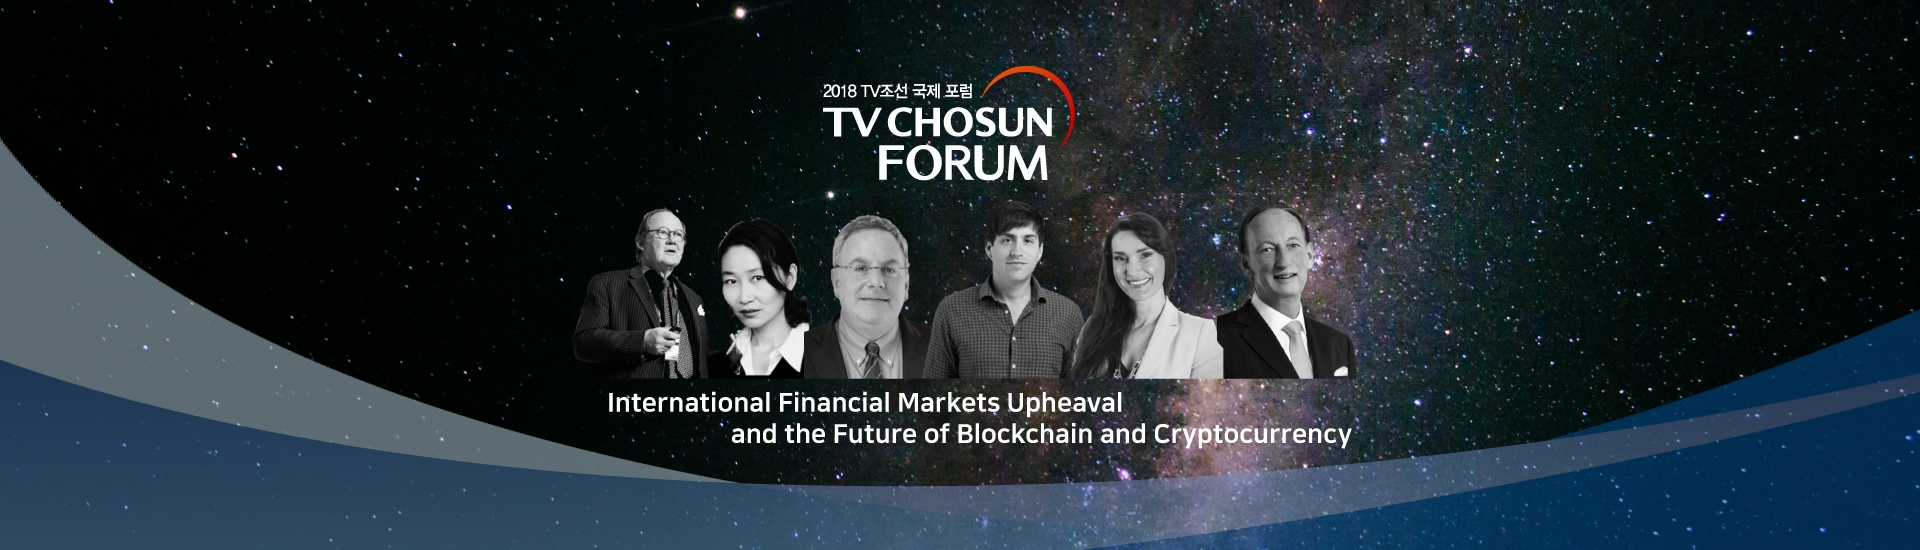 2018 TV Chosun Forum